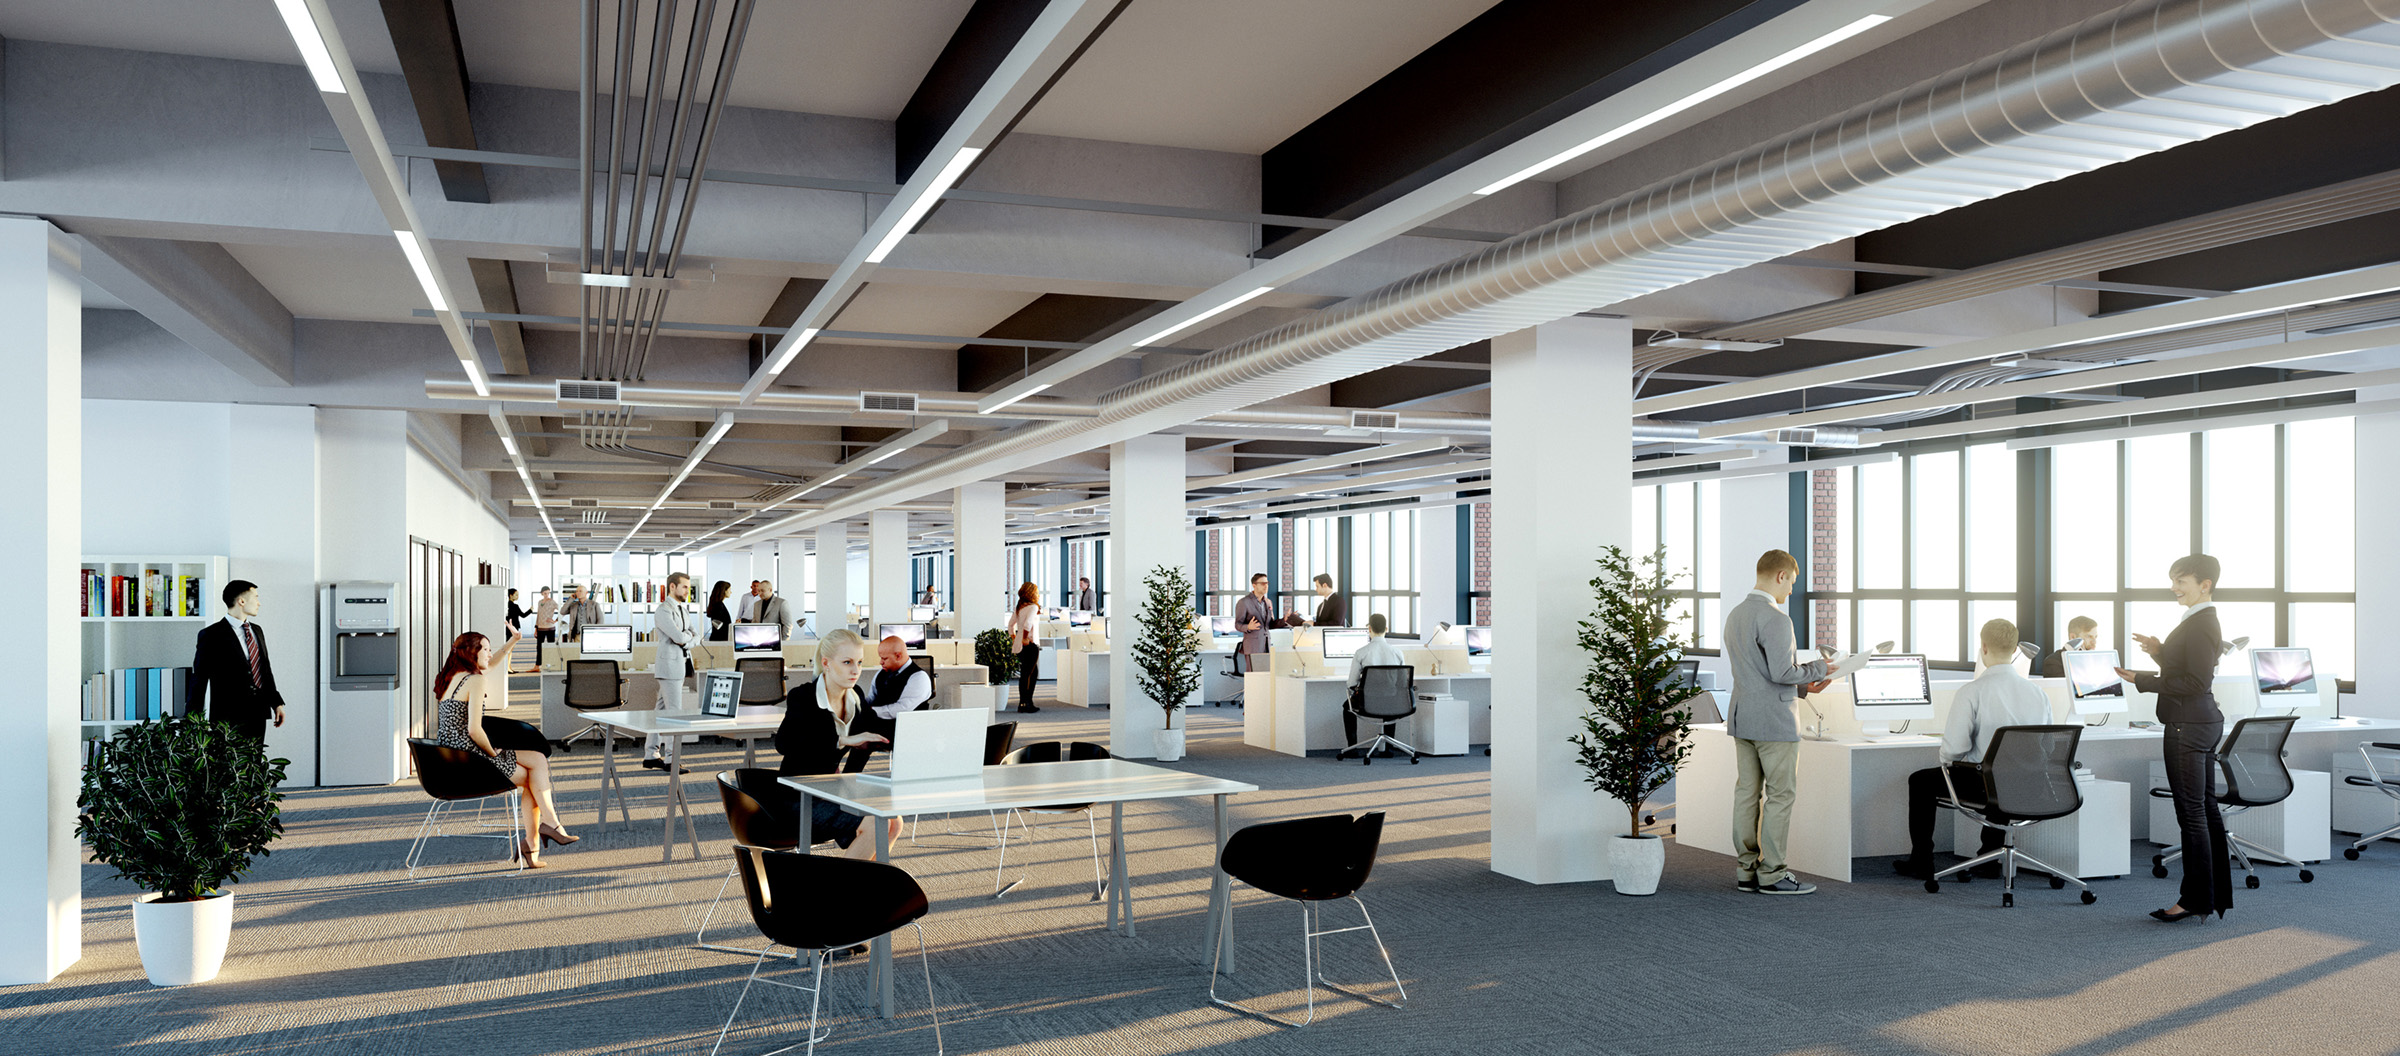 Counter-Projects-UK-Falmouth-Cornwall-CGI-Architectural-Visualisation-3d-Illustration-ChocolateFactory2.jpg